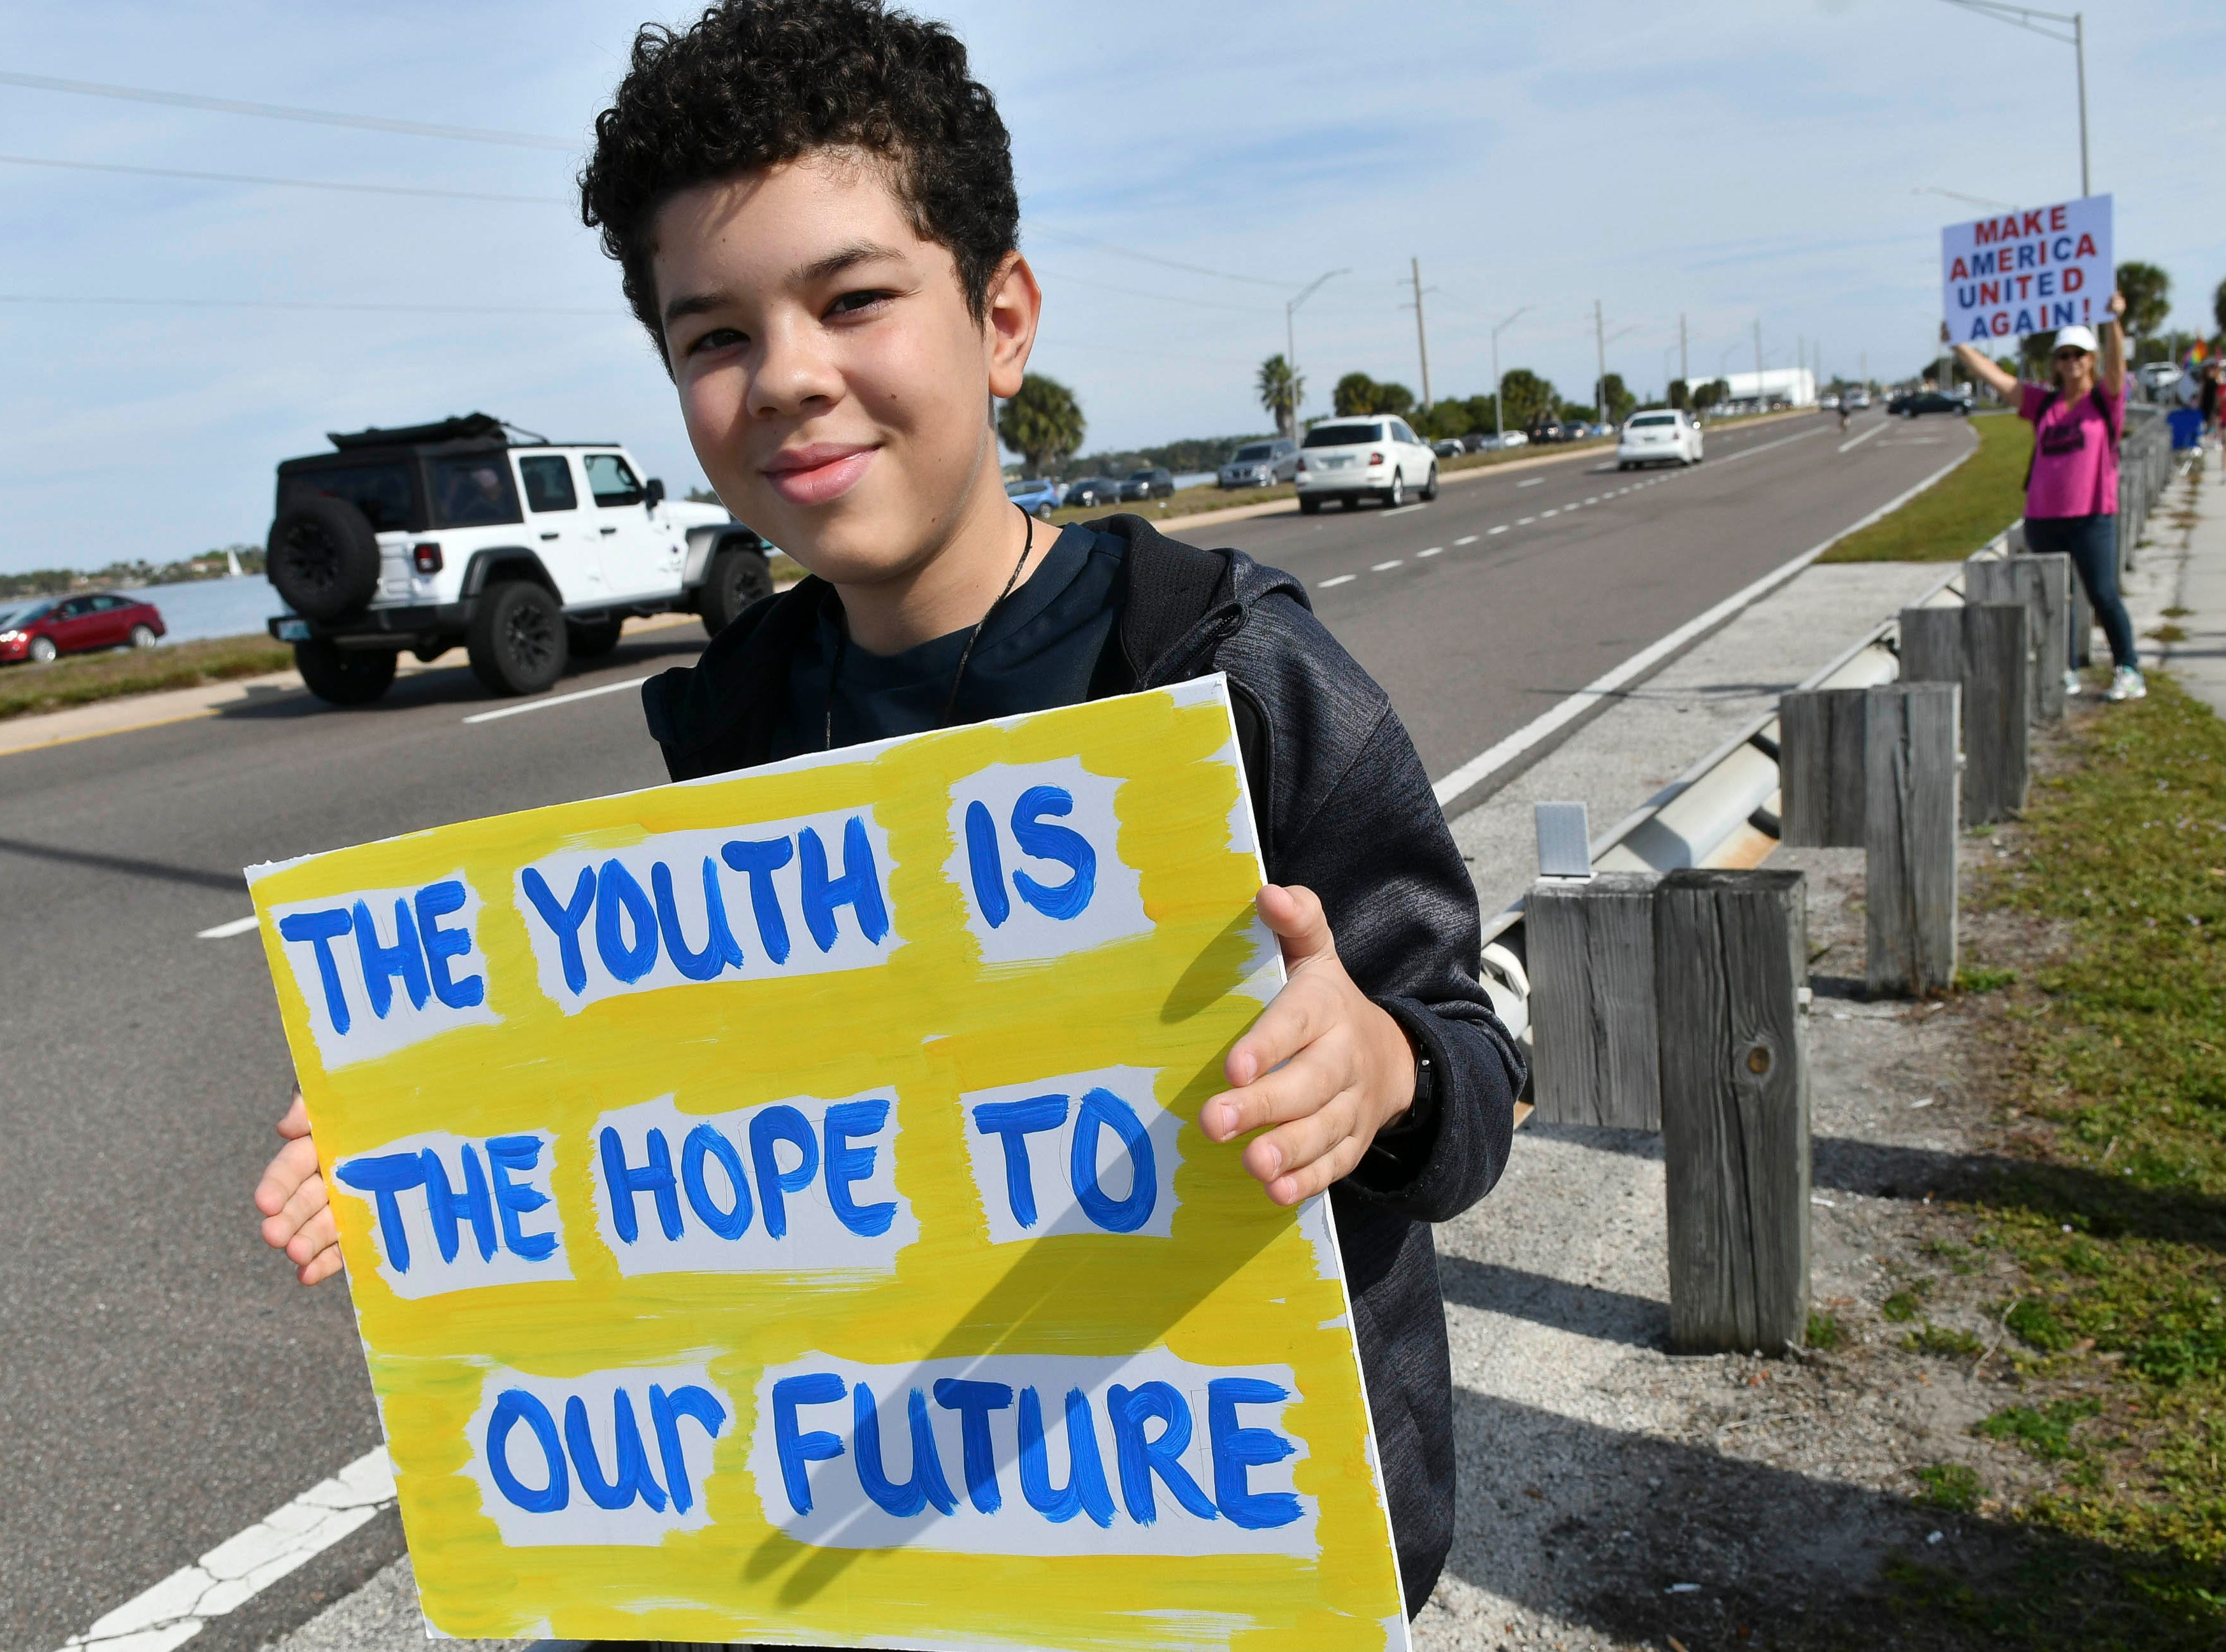 Isaiyah Llauger holds his sign along the Eau Gallie Causeway Saturday. Hundreds of people walked the causeway in Melbourne during a local observance of the national Women's March.